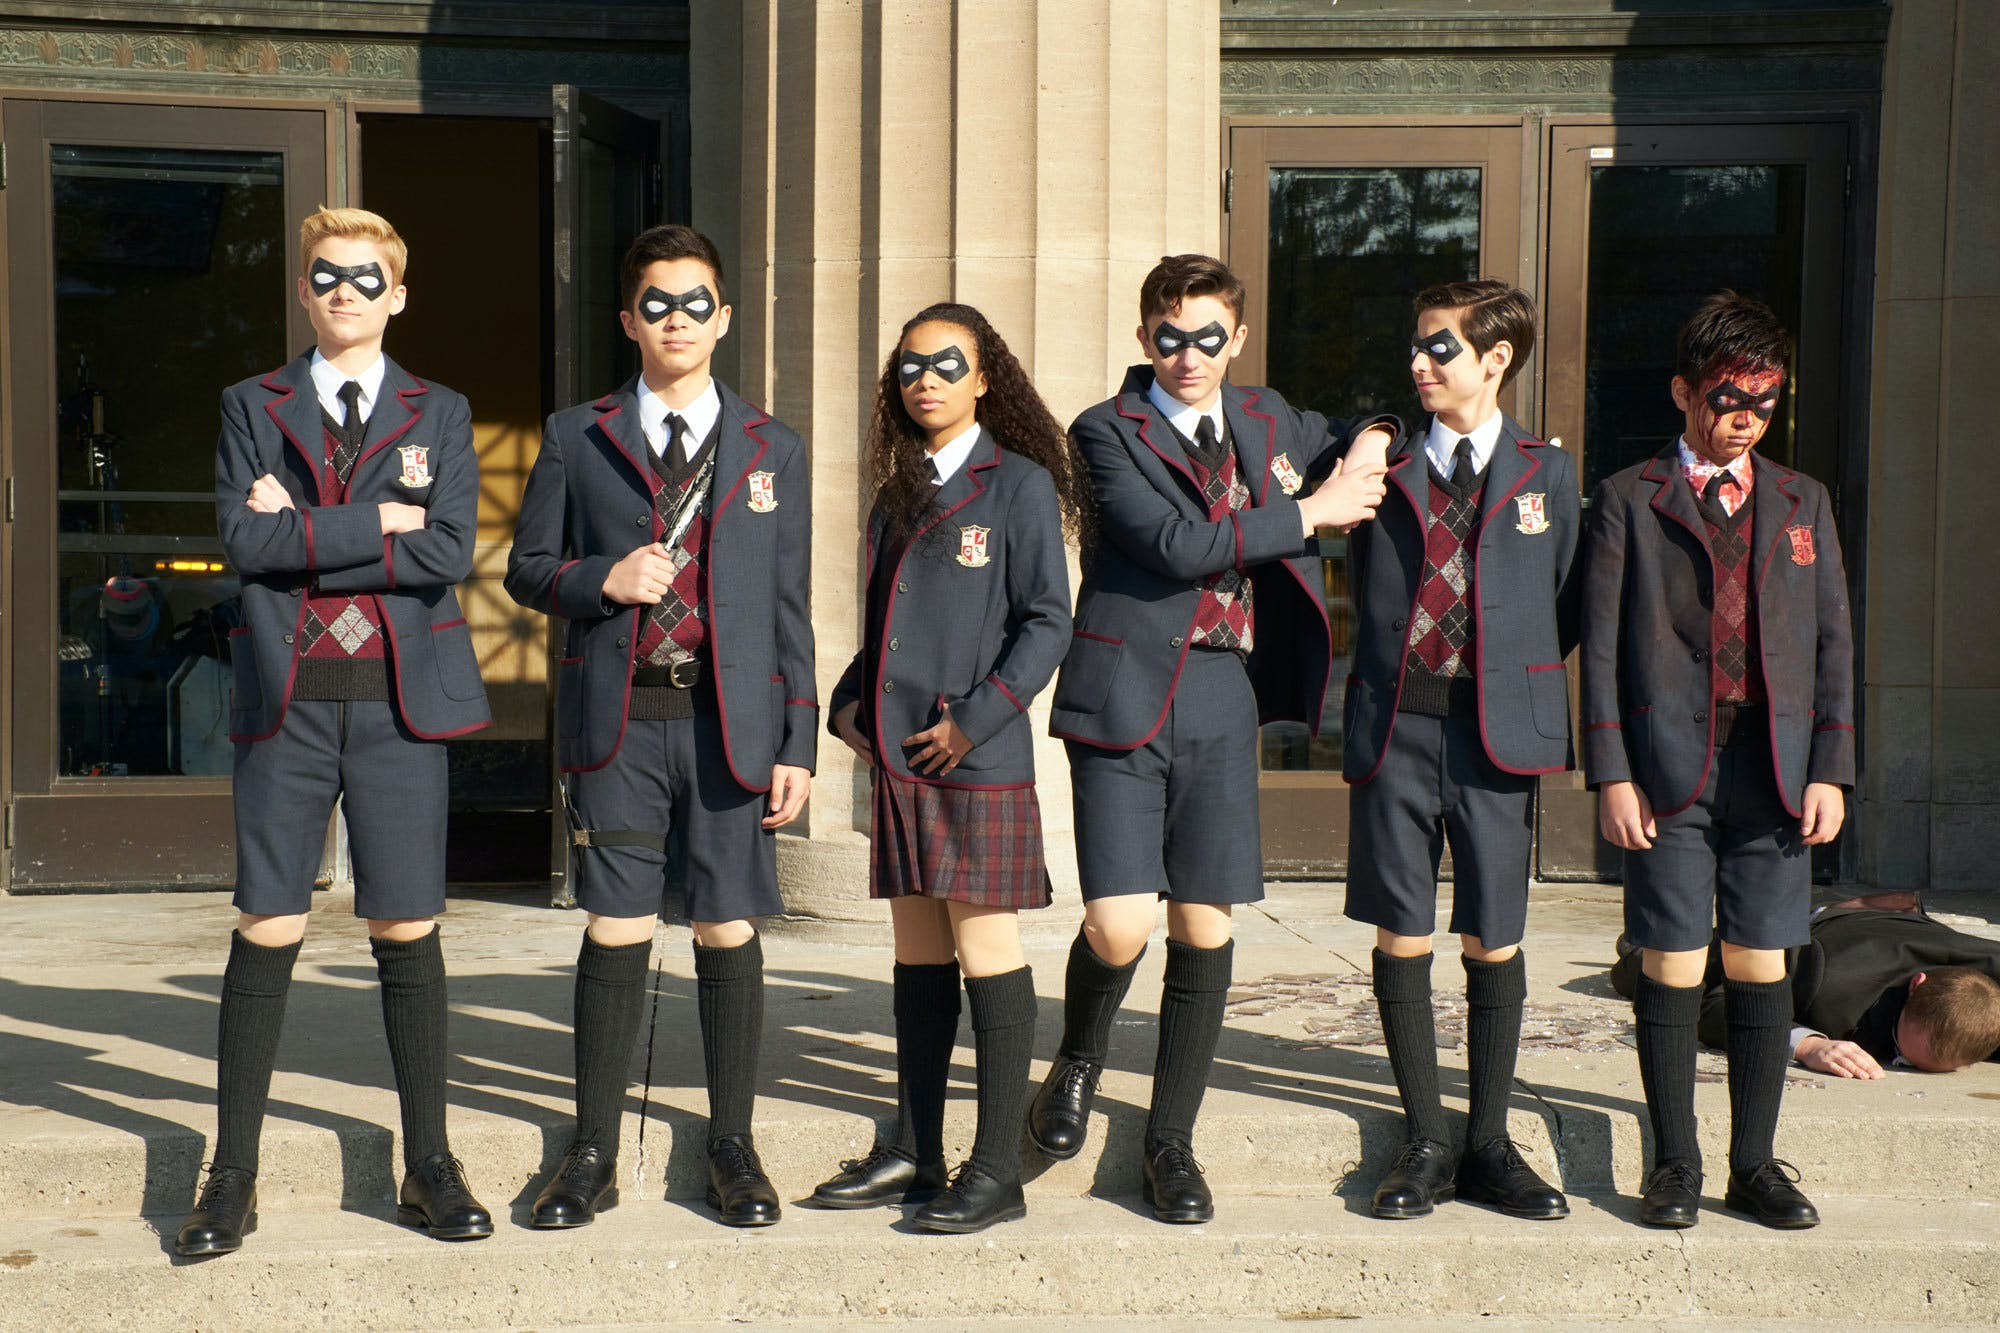 The Umbrella Academy Was Watched By 45 Million Households In Its First Four Weeks